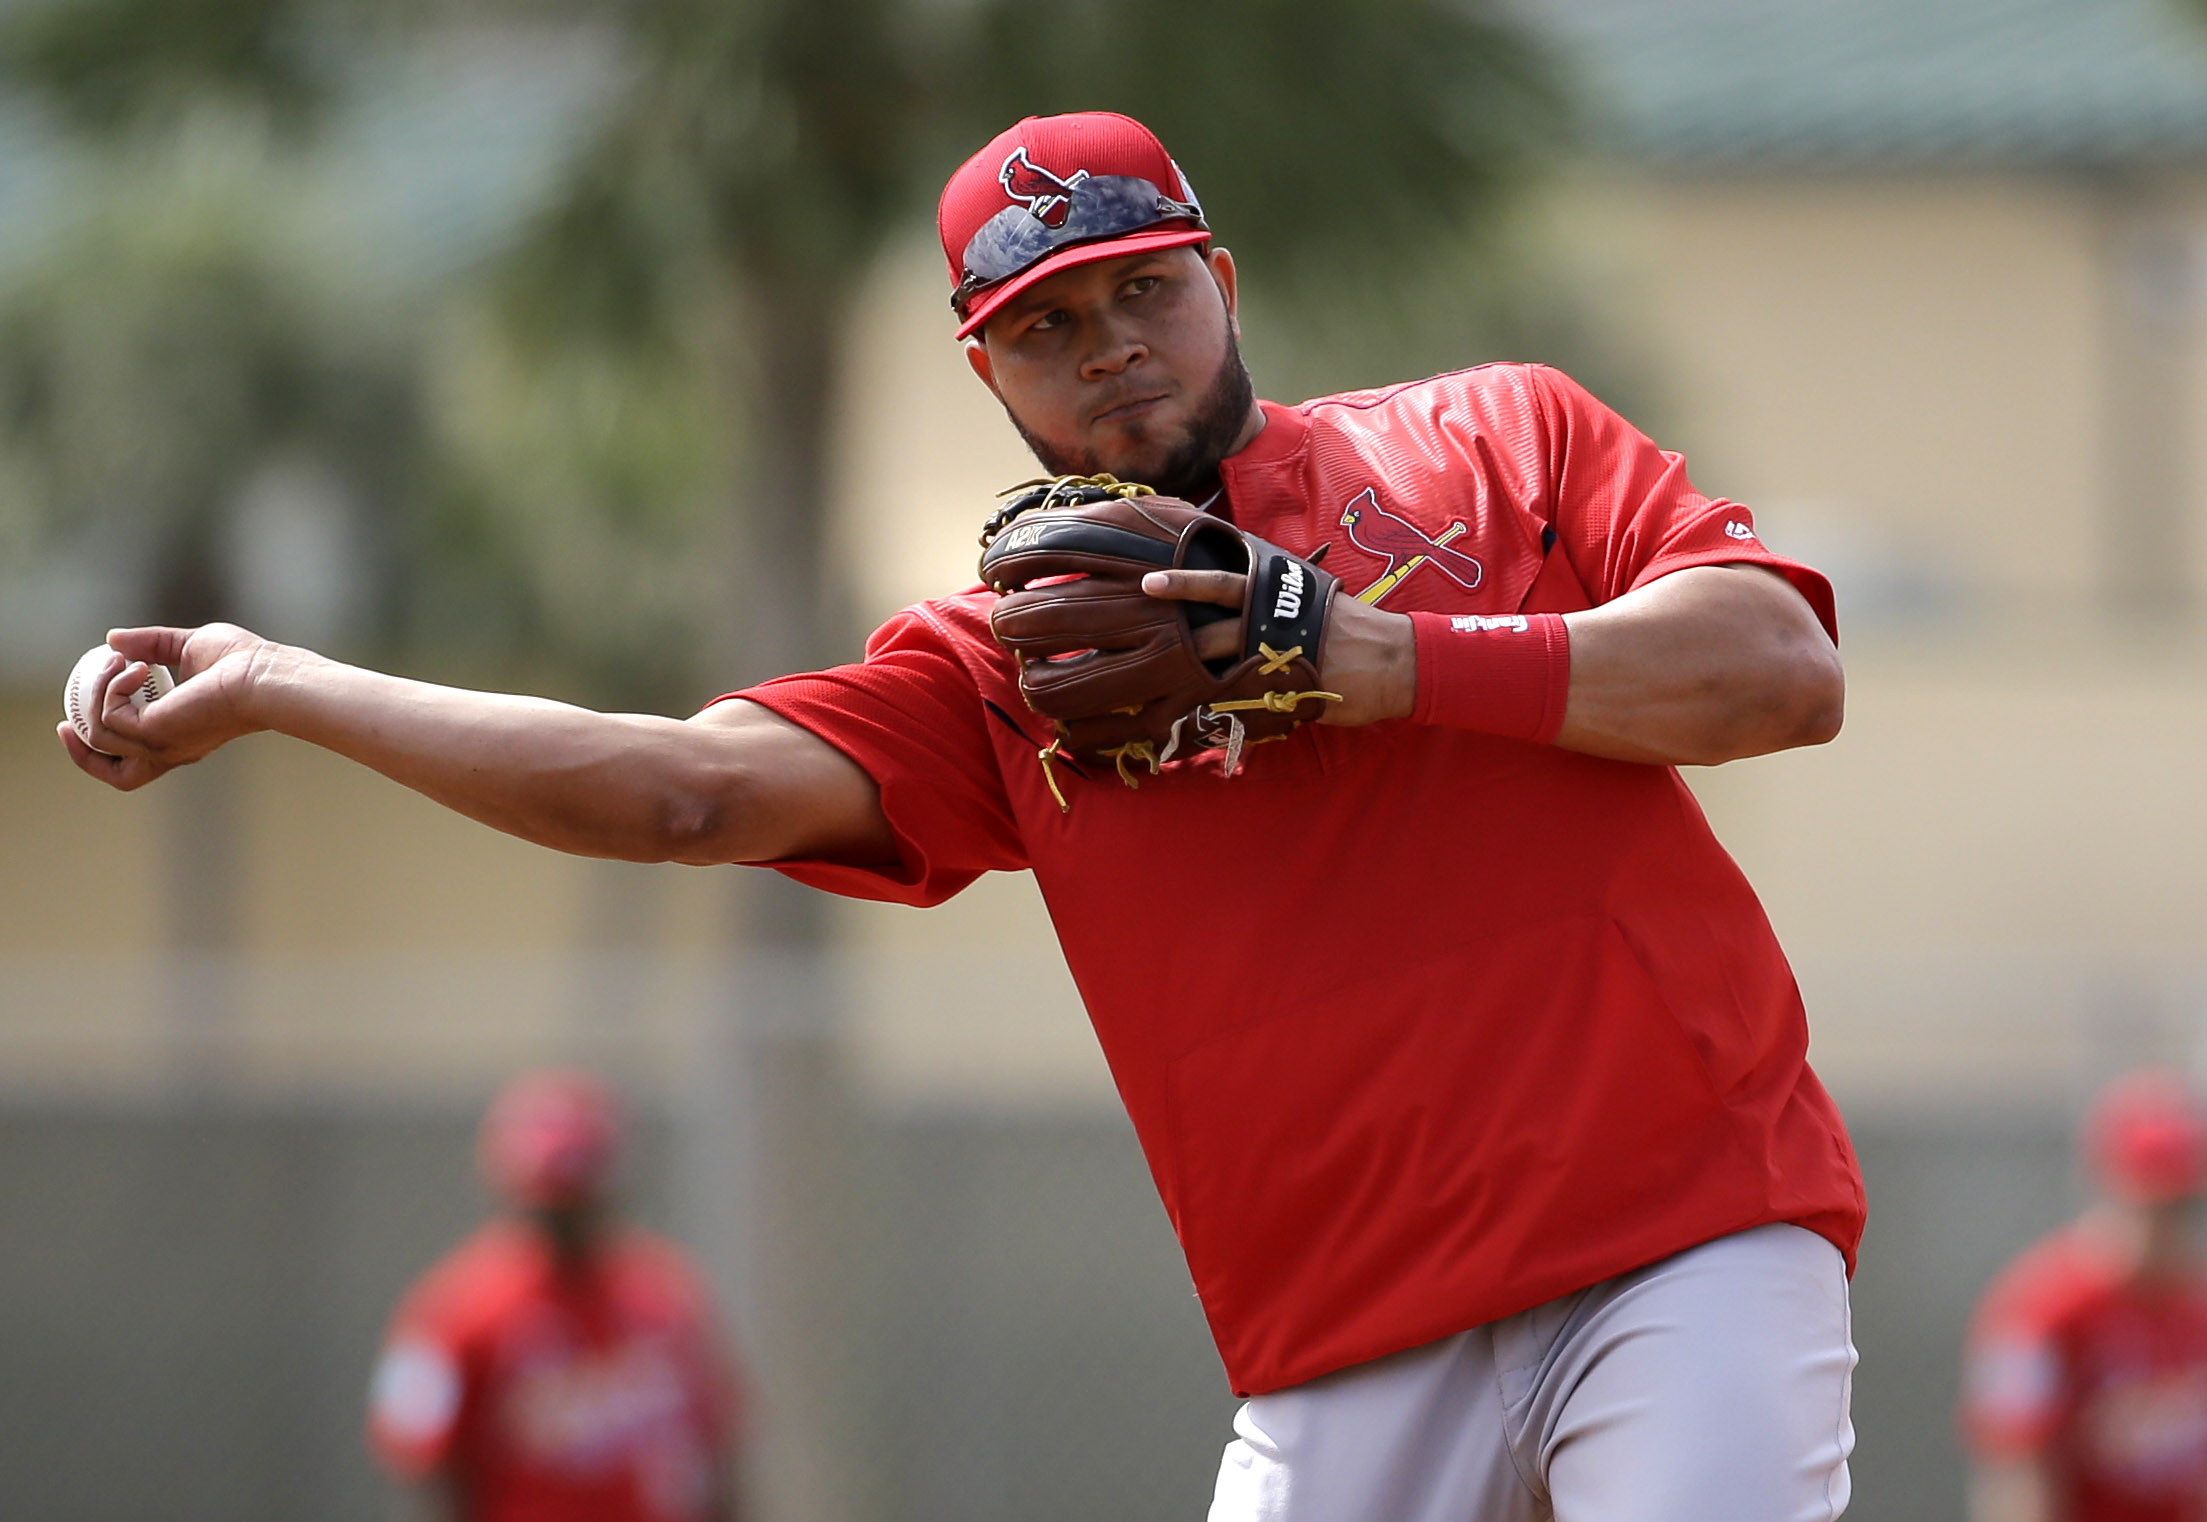 FILE - In this Feb. 23, 2016, file photo, St. Louis Cardinals shortstop Jhonny Peralta throws to first during spring training baseball practice in Jupiter, Fla. Peralta has undergone surgery for a left thumb injury and likely will be sidelined for about 1